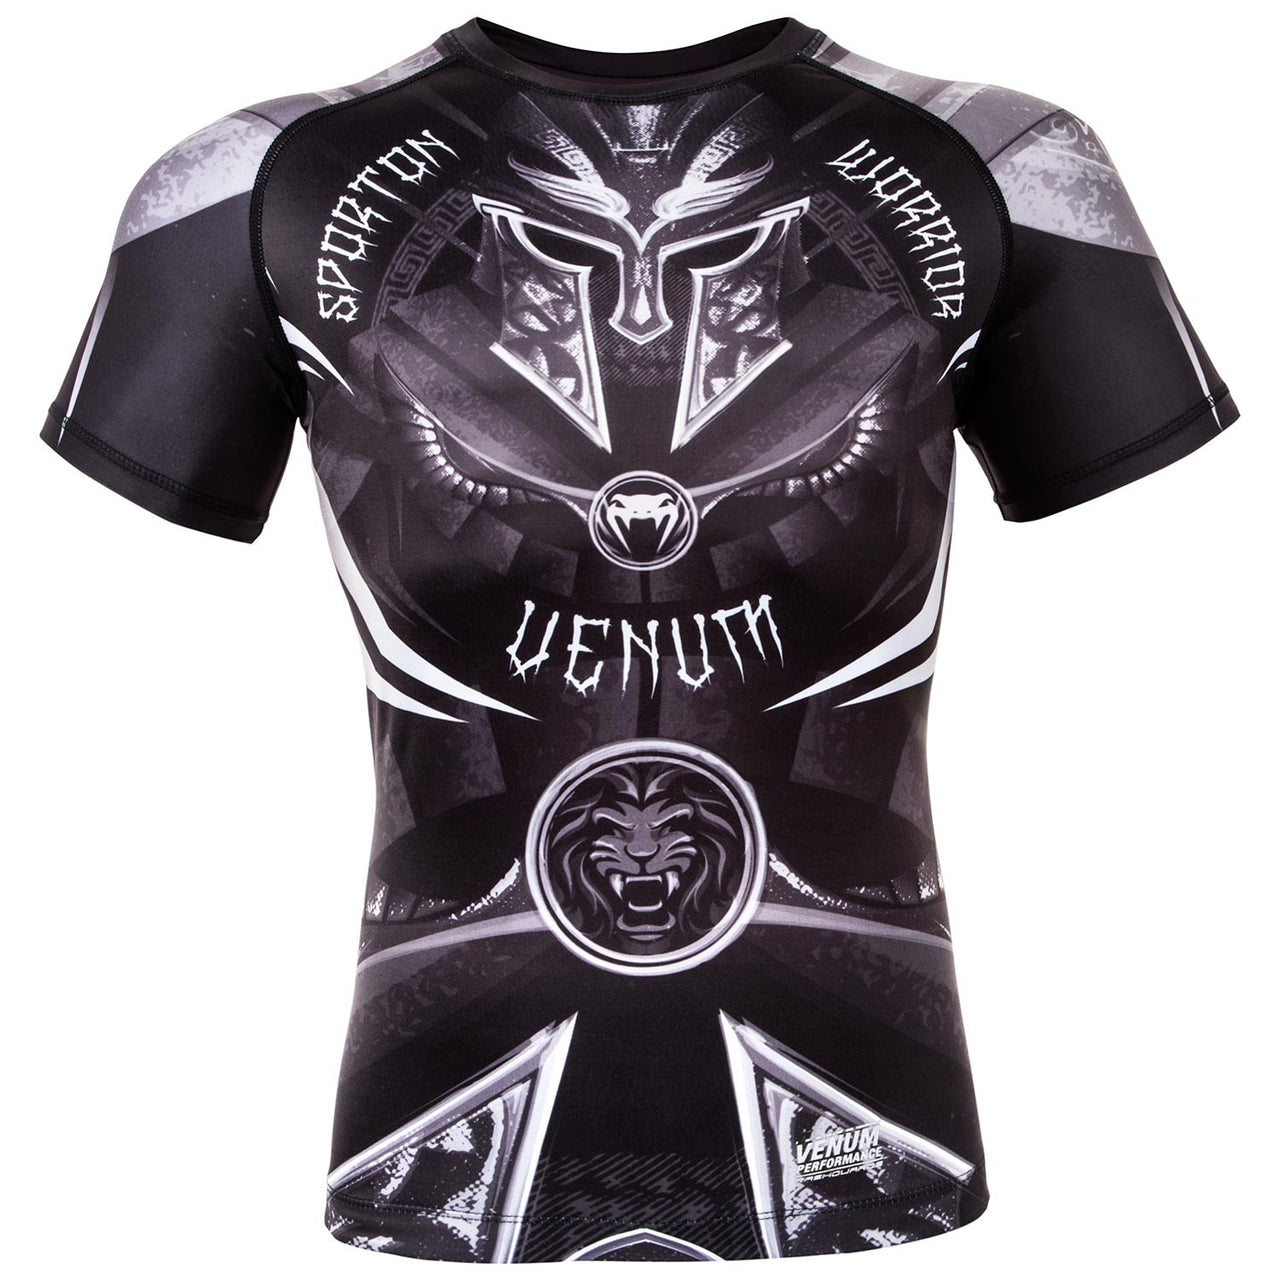 Venum Gladiator 3.0 Rashguard - Short Sleeves - Black/White